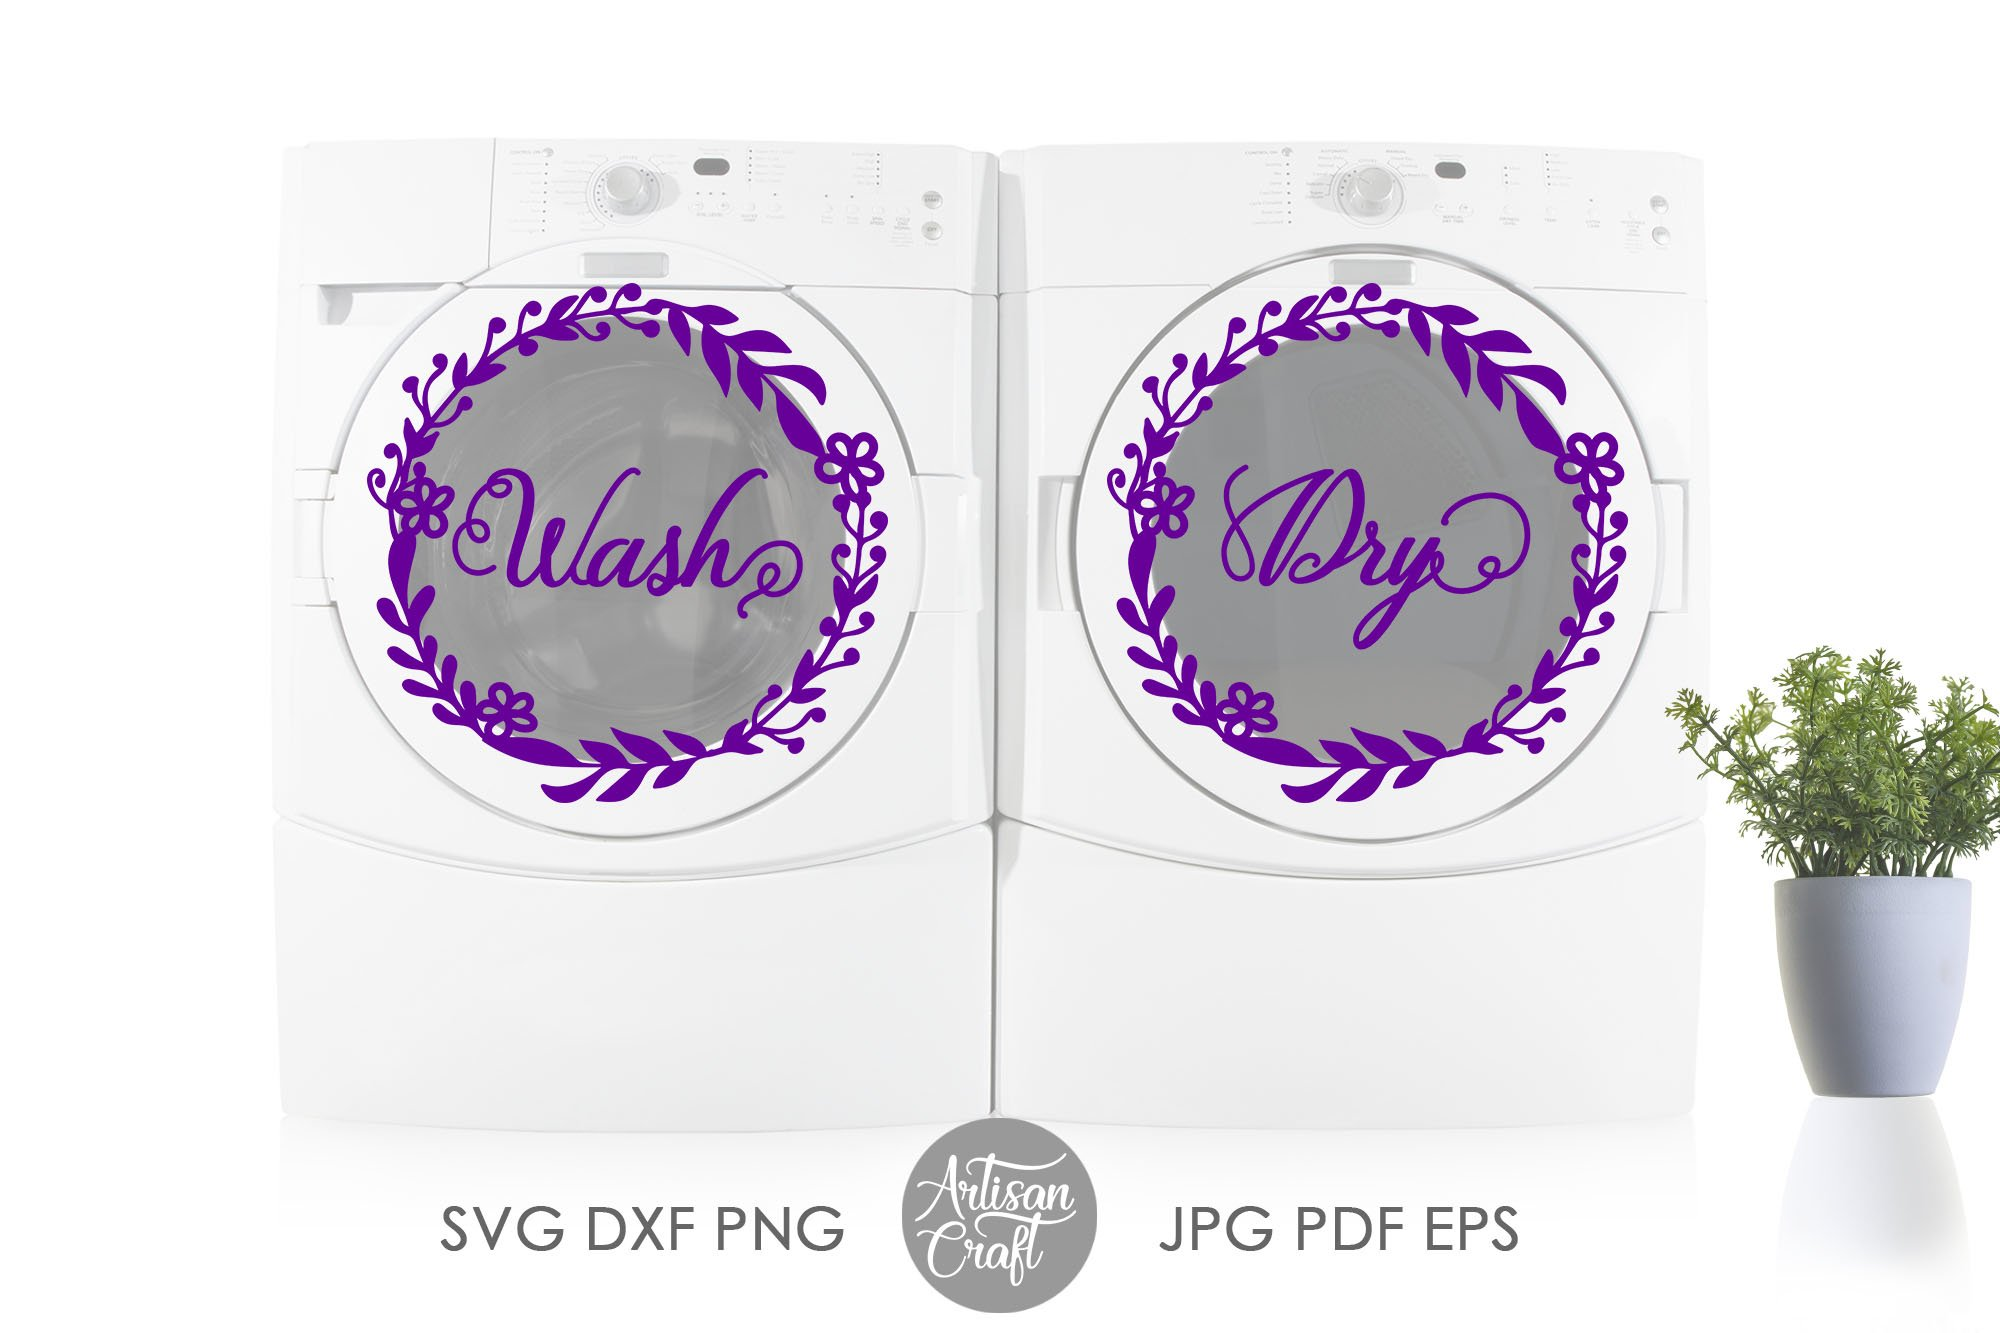 Wash dry svg, washer dryer decals, floral wreath png example image 6